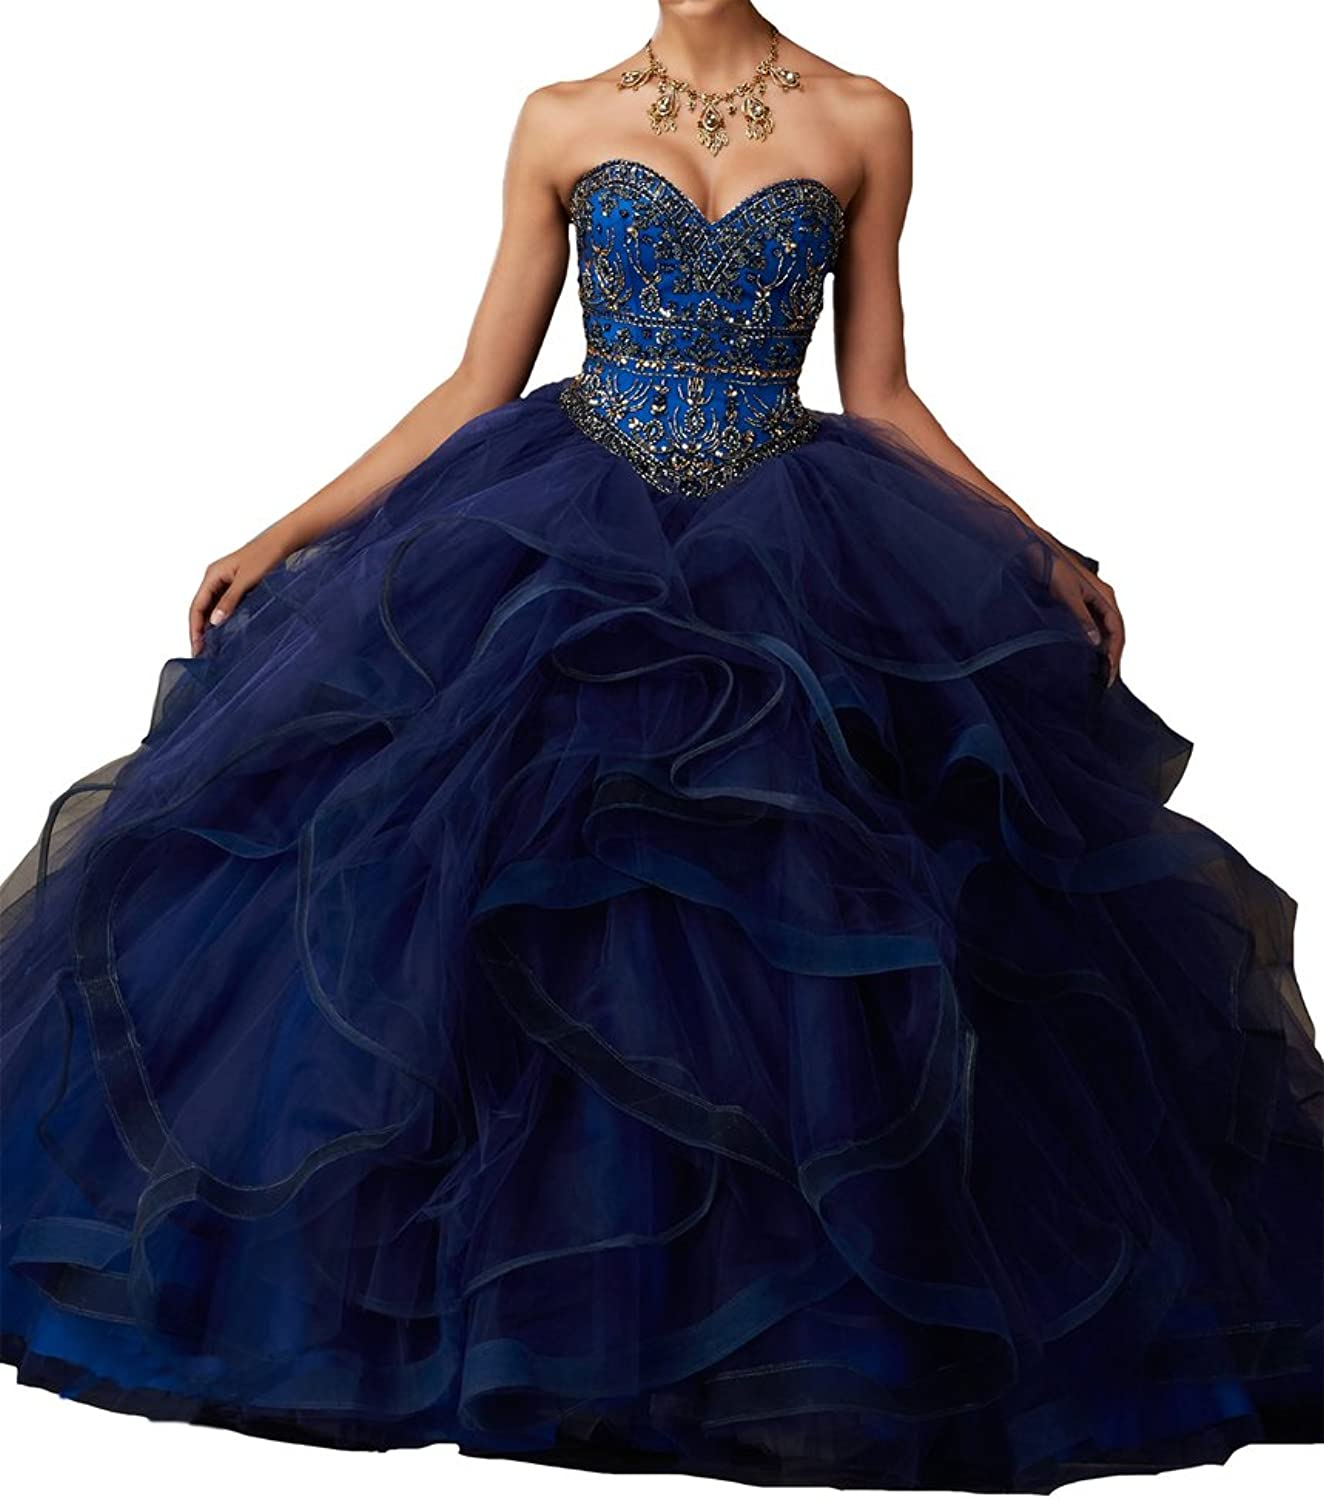 Yang Sweet Girls Ball Gowns Women Celebrity Prom Quinceanera Dresses With Jacket